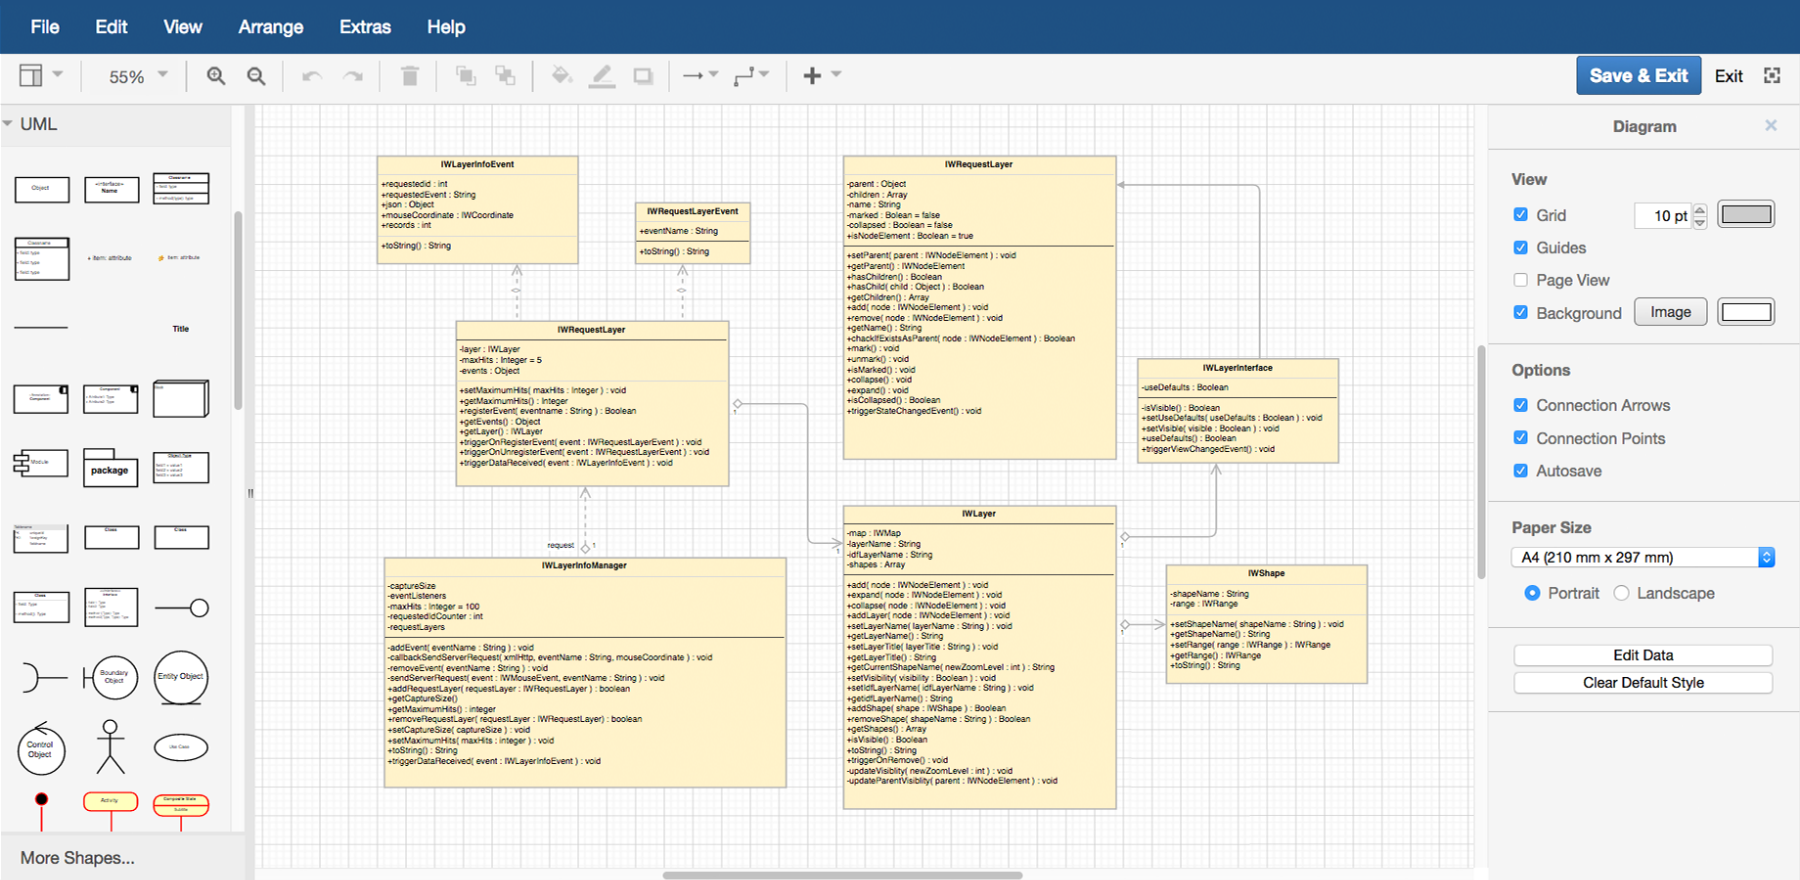 Create a UML Diagram in draw.io